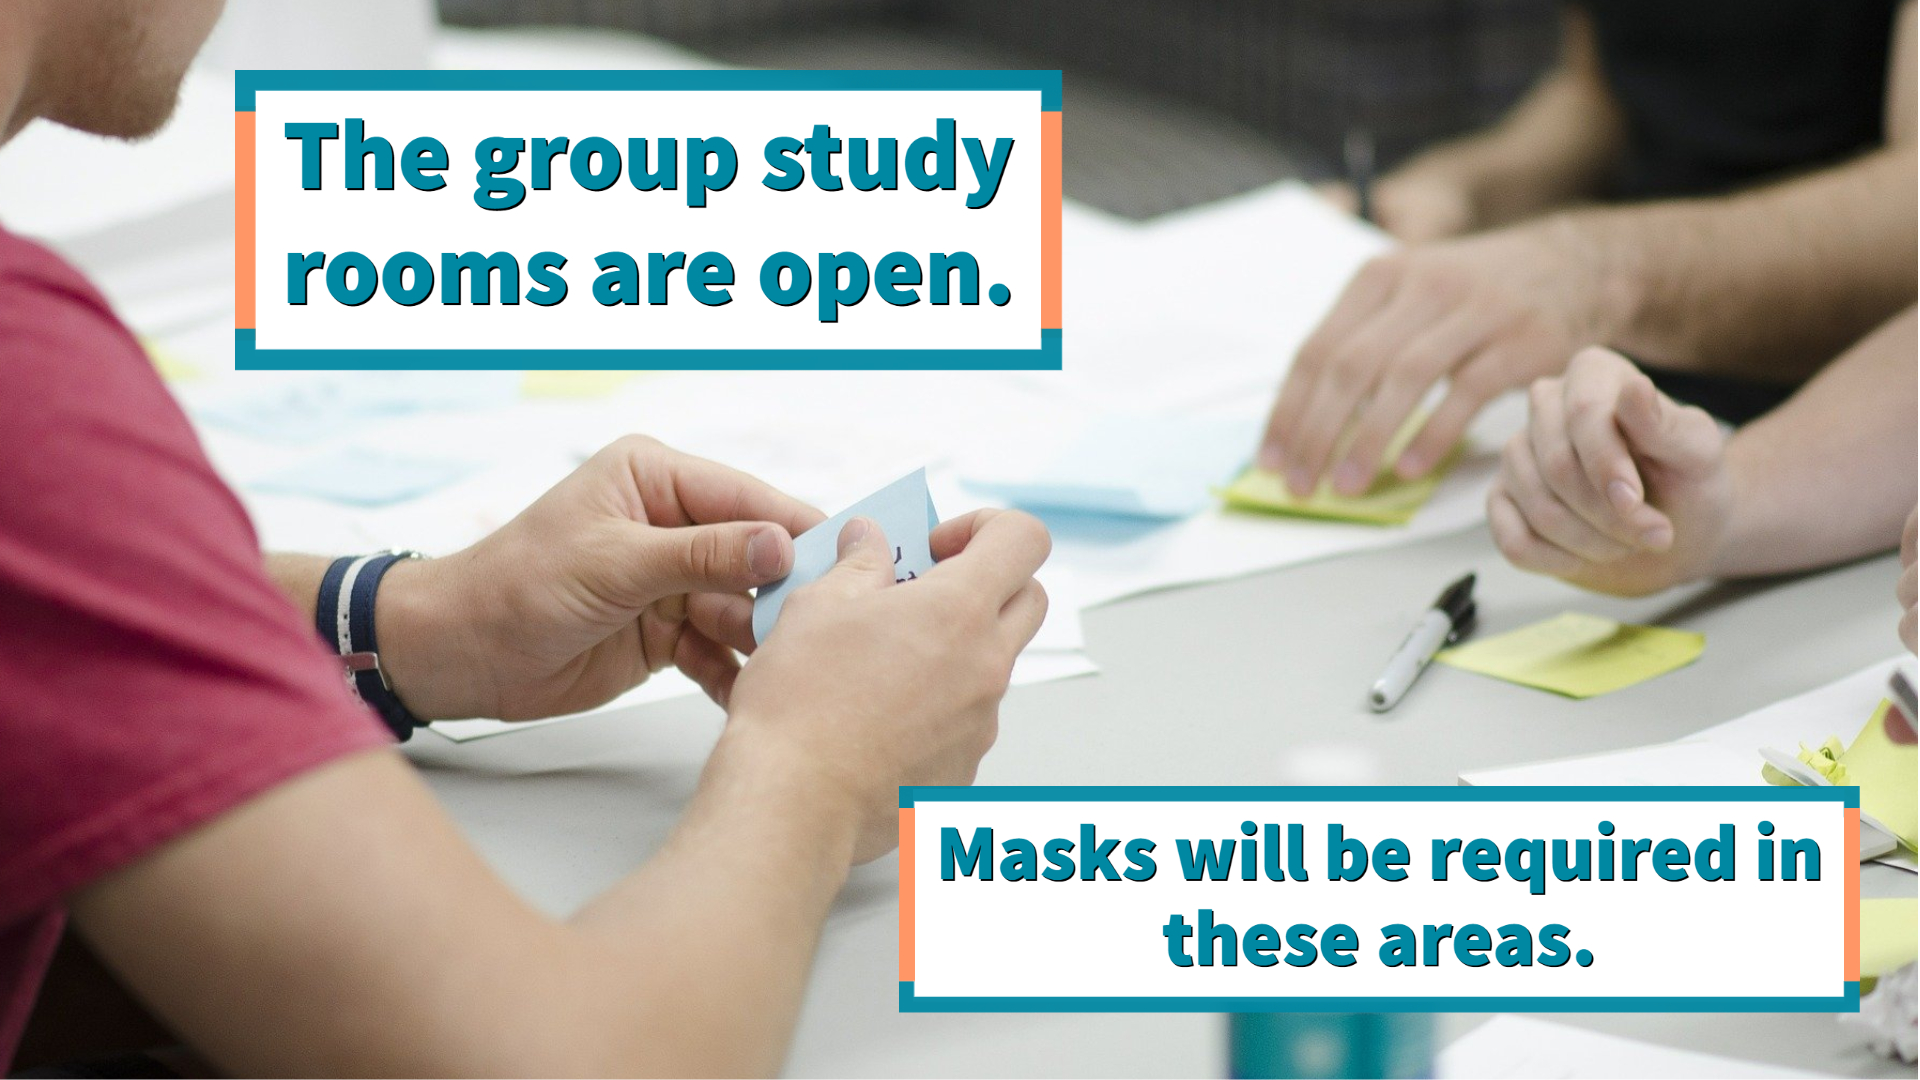 The group study rooms are open. See our policy page for more information.